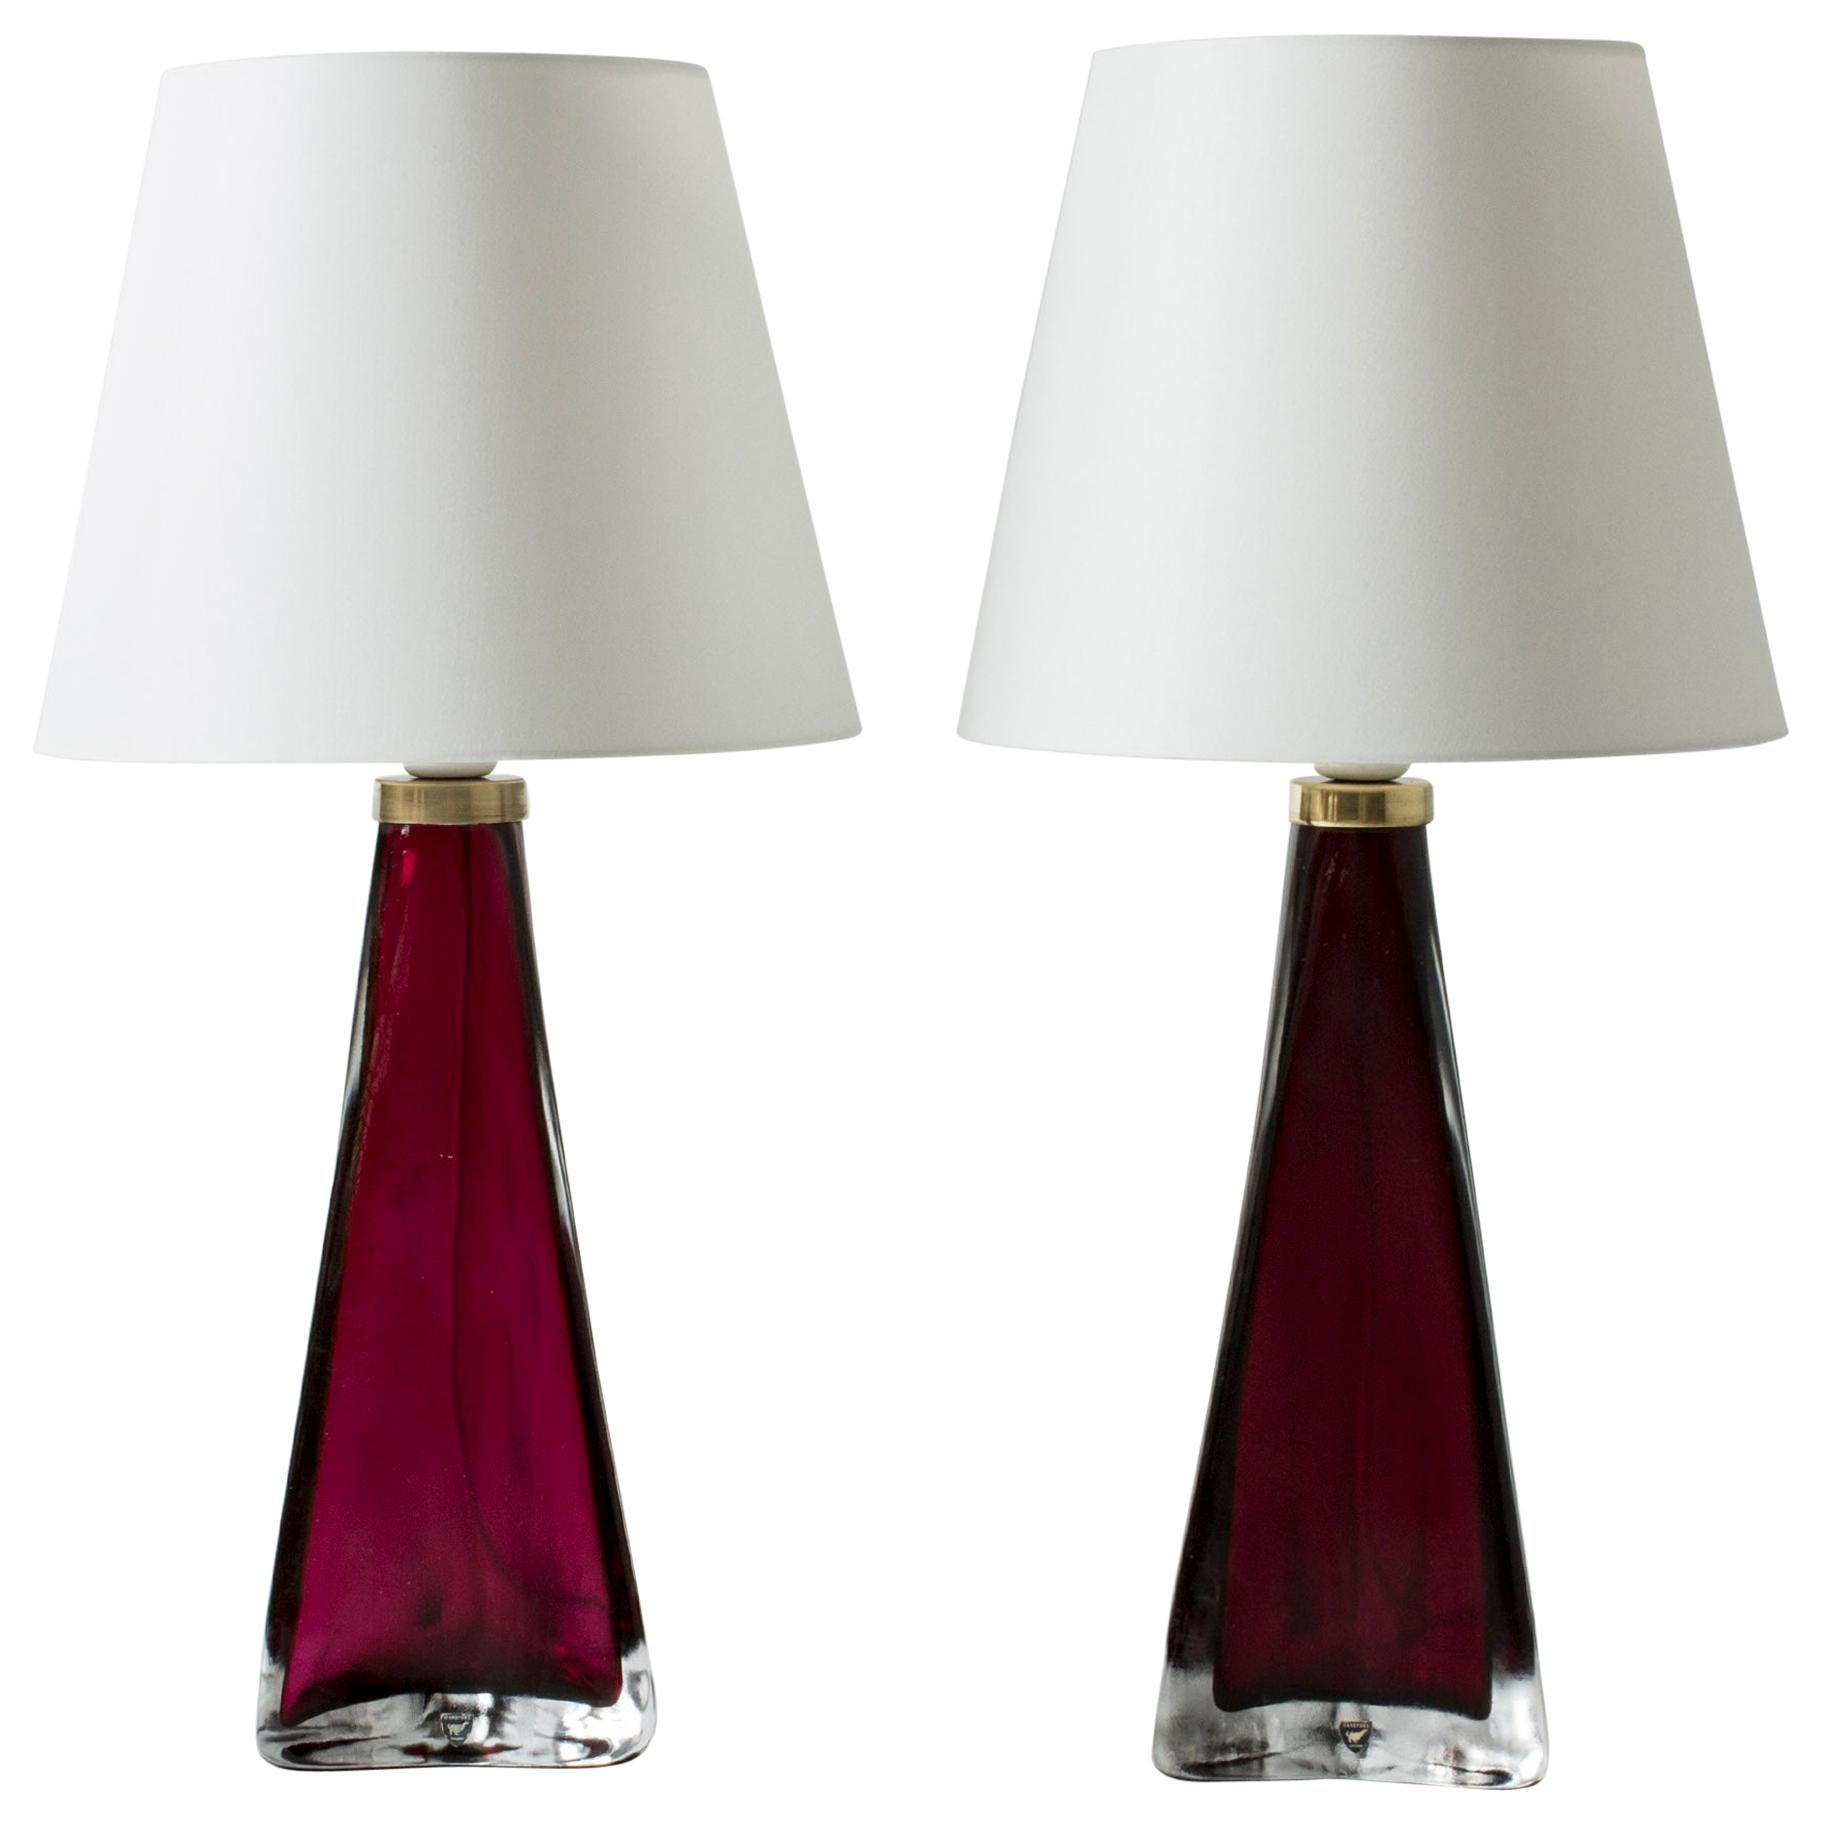 Pair of Colored Glass Lamps Carl Fagerlund for Orrefors, Sweden, 1960s